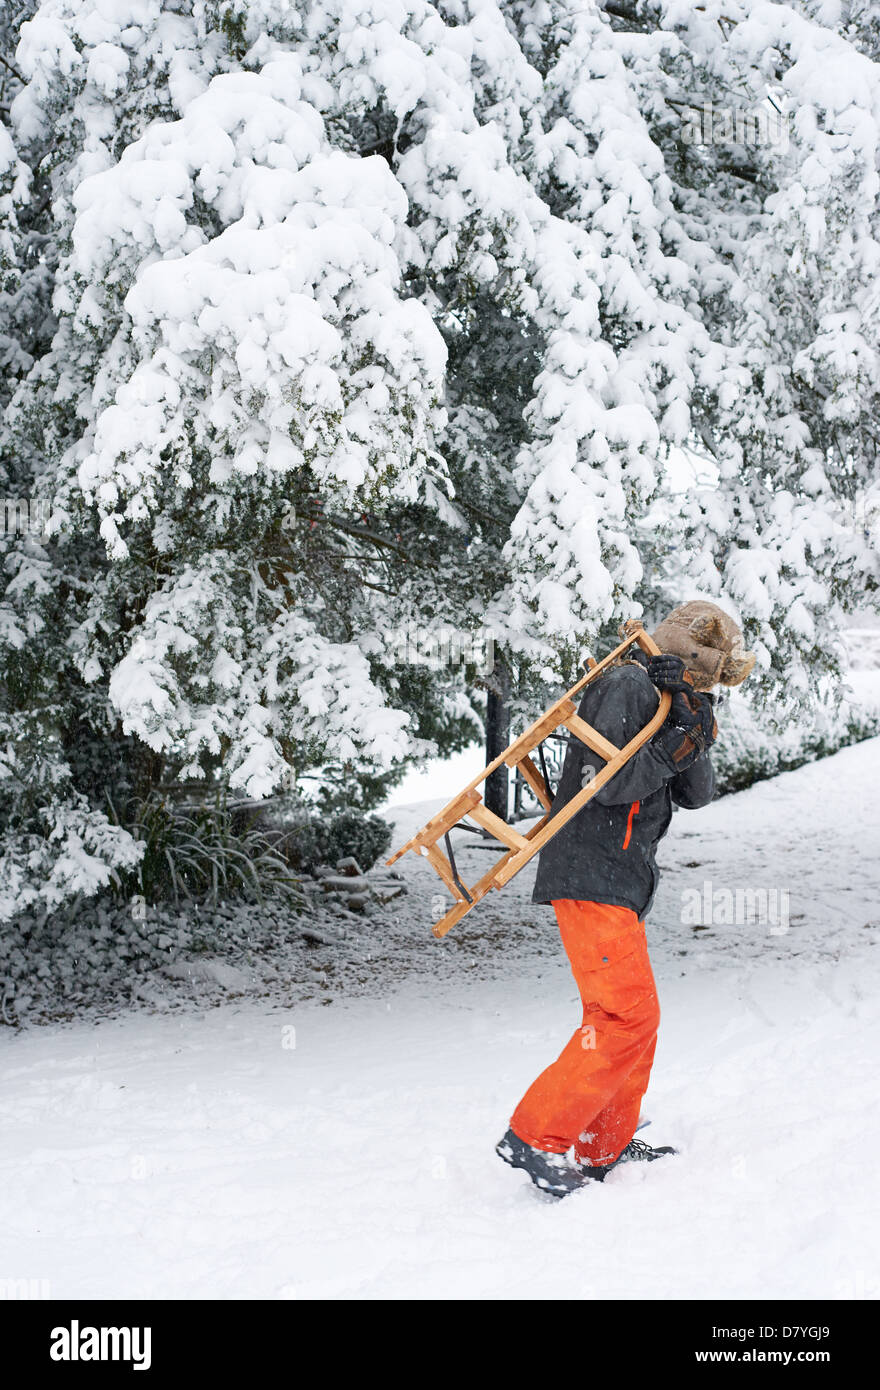 Boy carrying wooden sled in snow - Stock Image